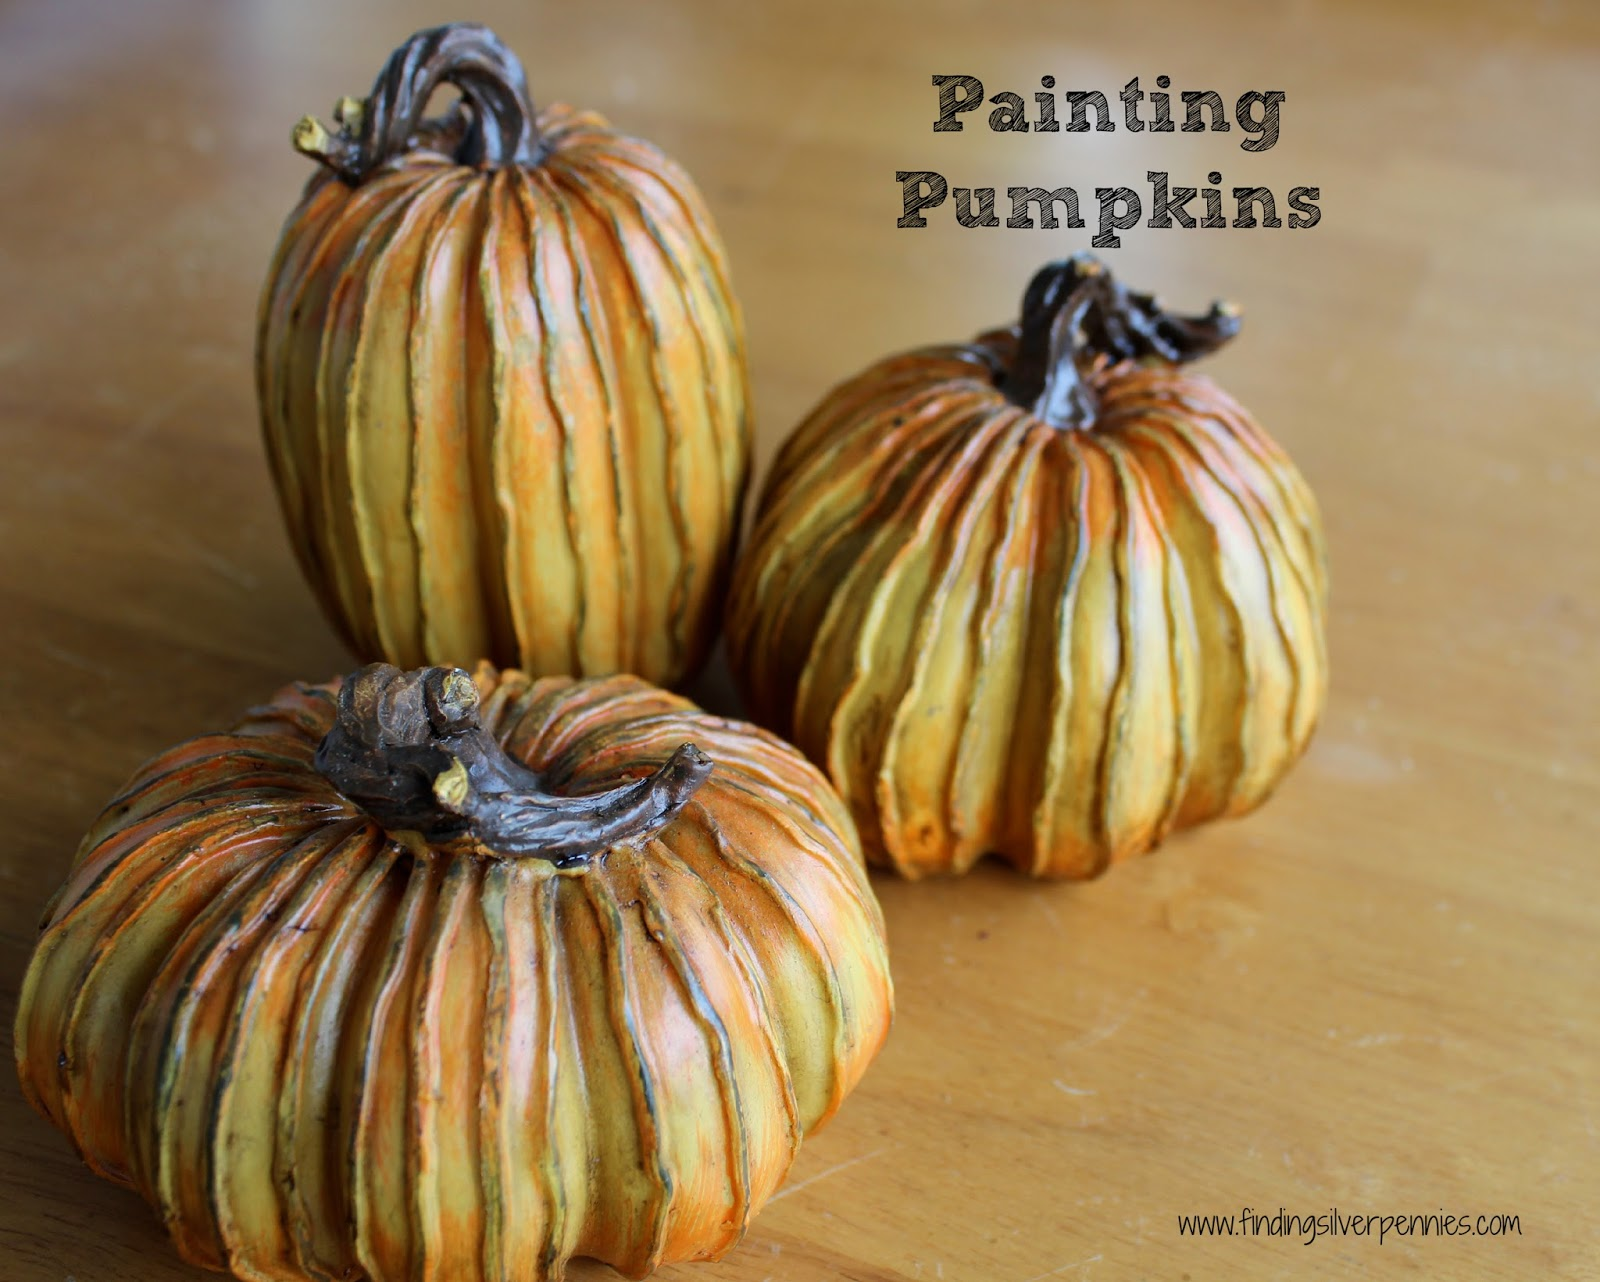 How to store pumpkins - Painting Dollar Store Pumpkins